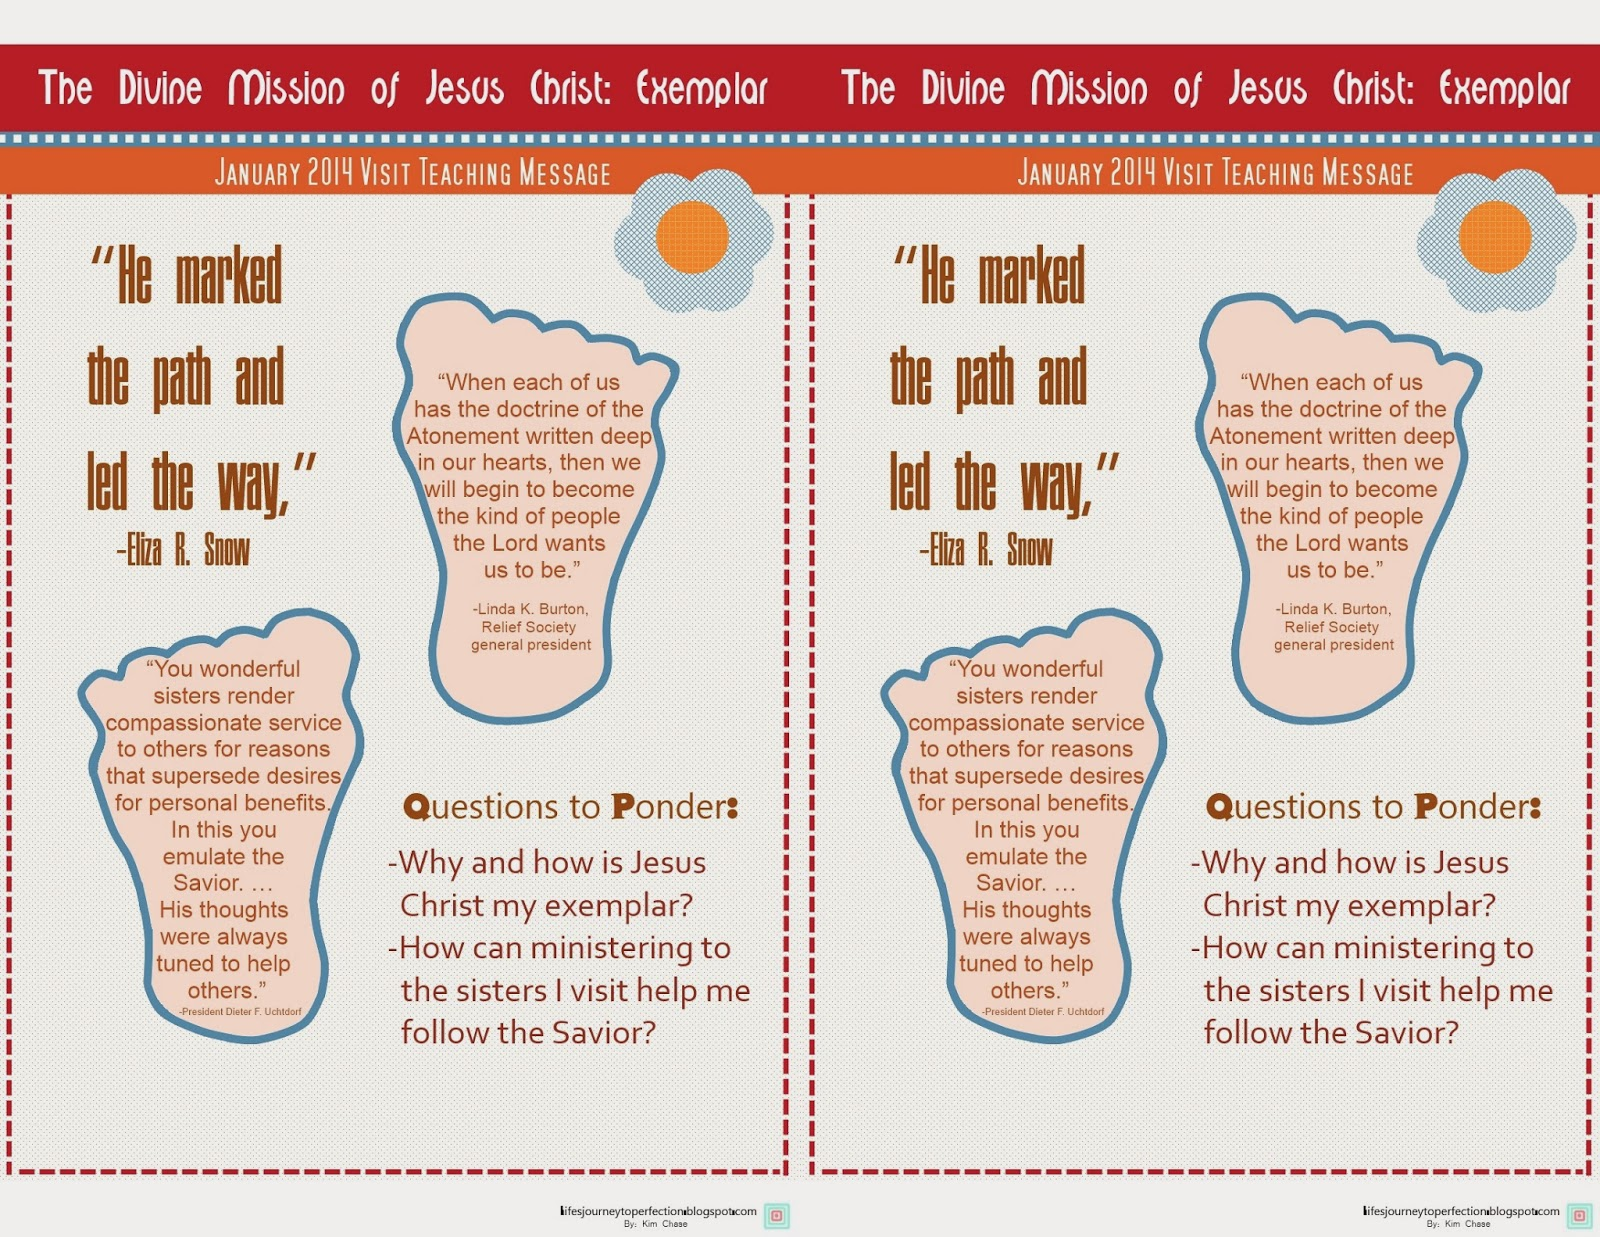 Life S Journey To Perfection January Visit Teaching Message Handout